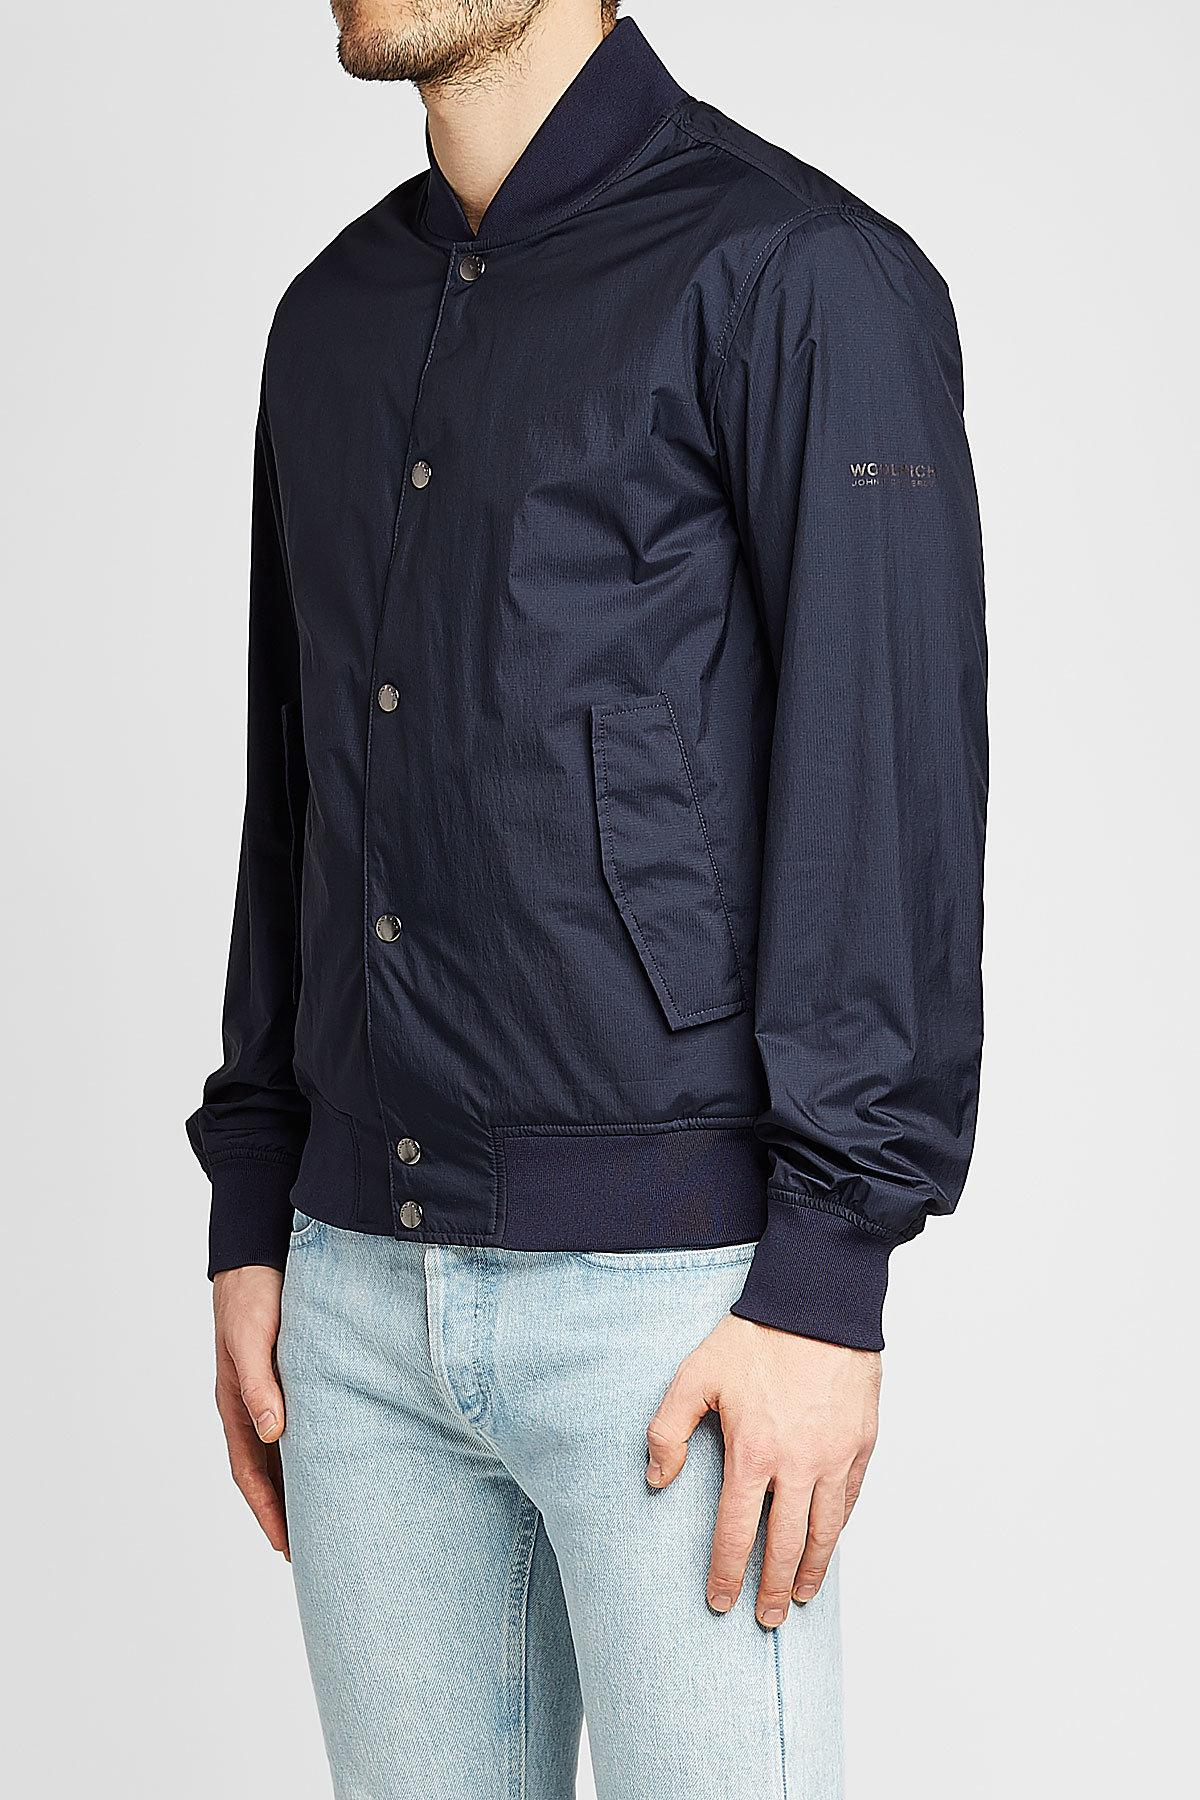 68a4833ee Woolrich Blue Wallaby Bomber Jacket for men